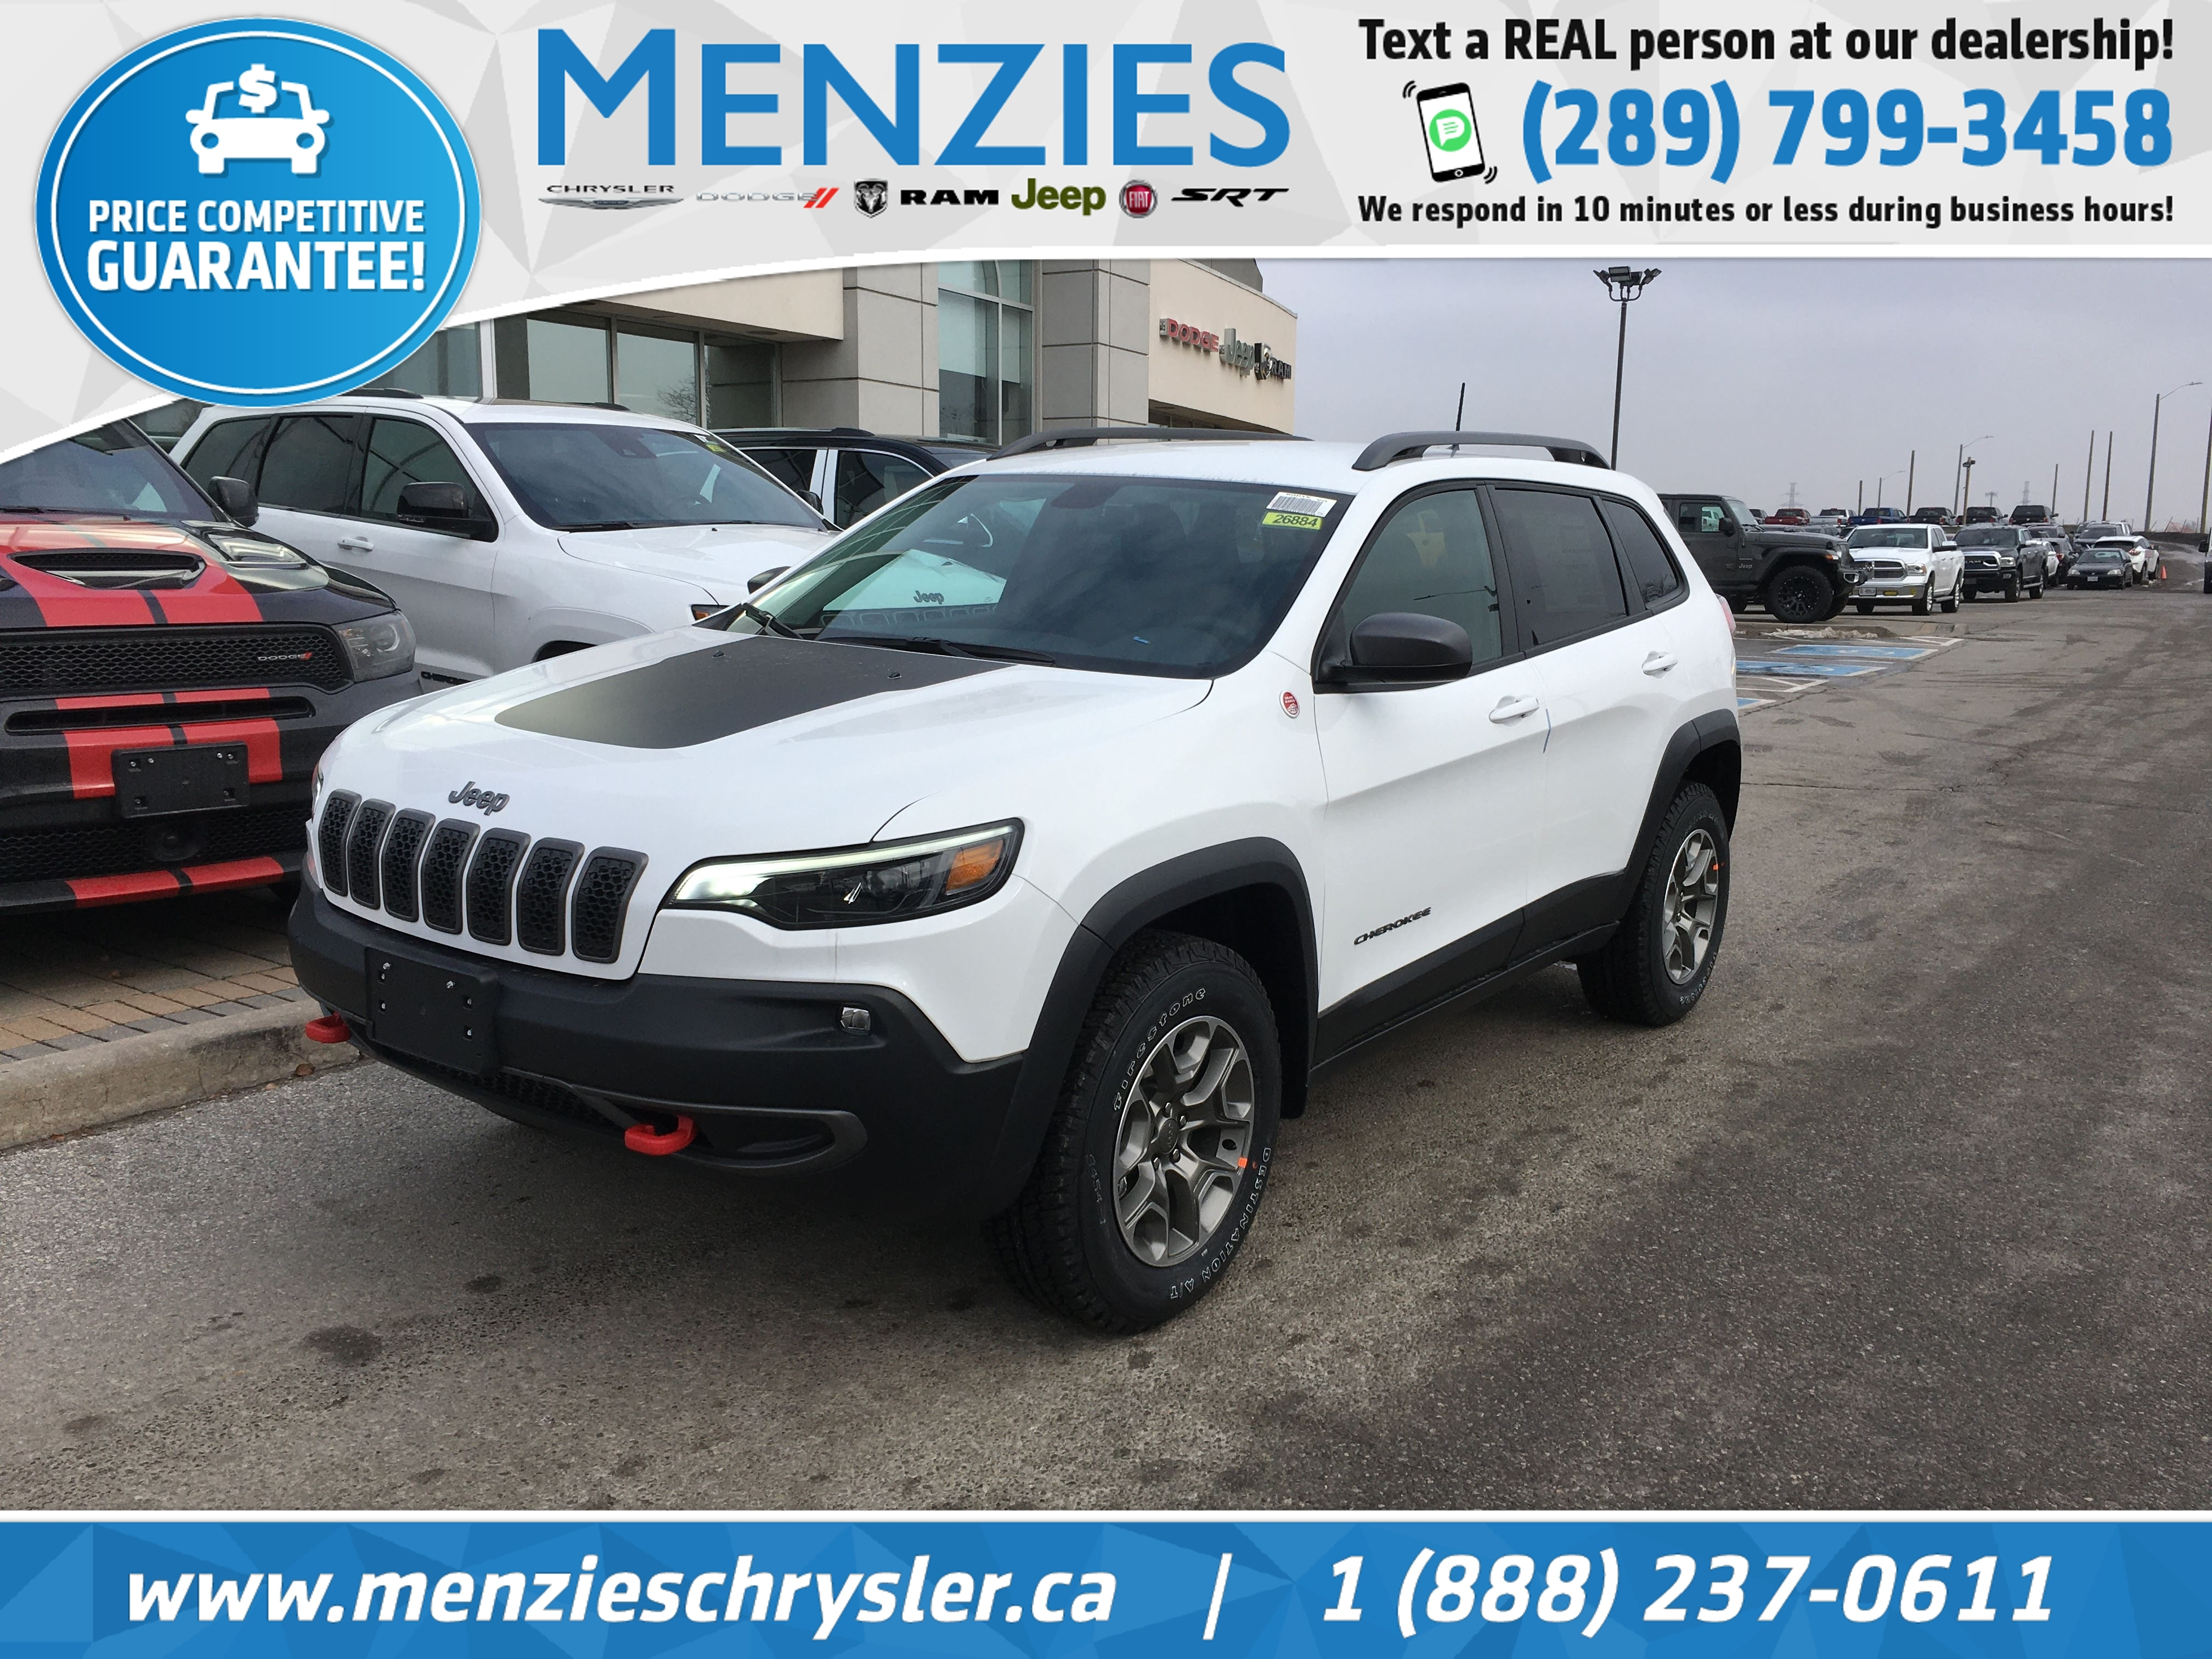 2020 Jeep Cherokee Trailhawk 4x4/COLD WEATHER GROUP SUV